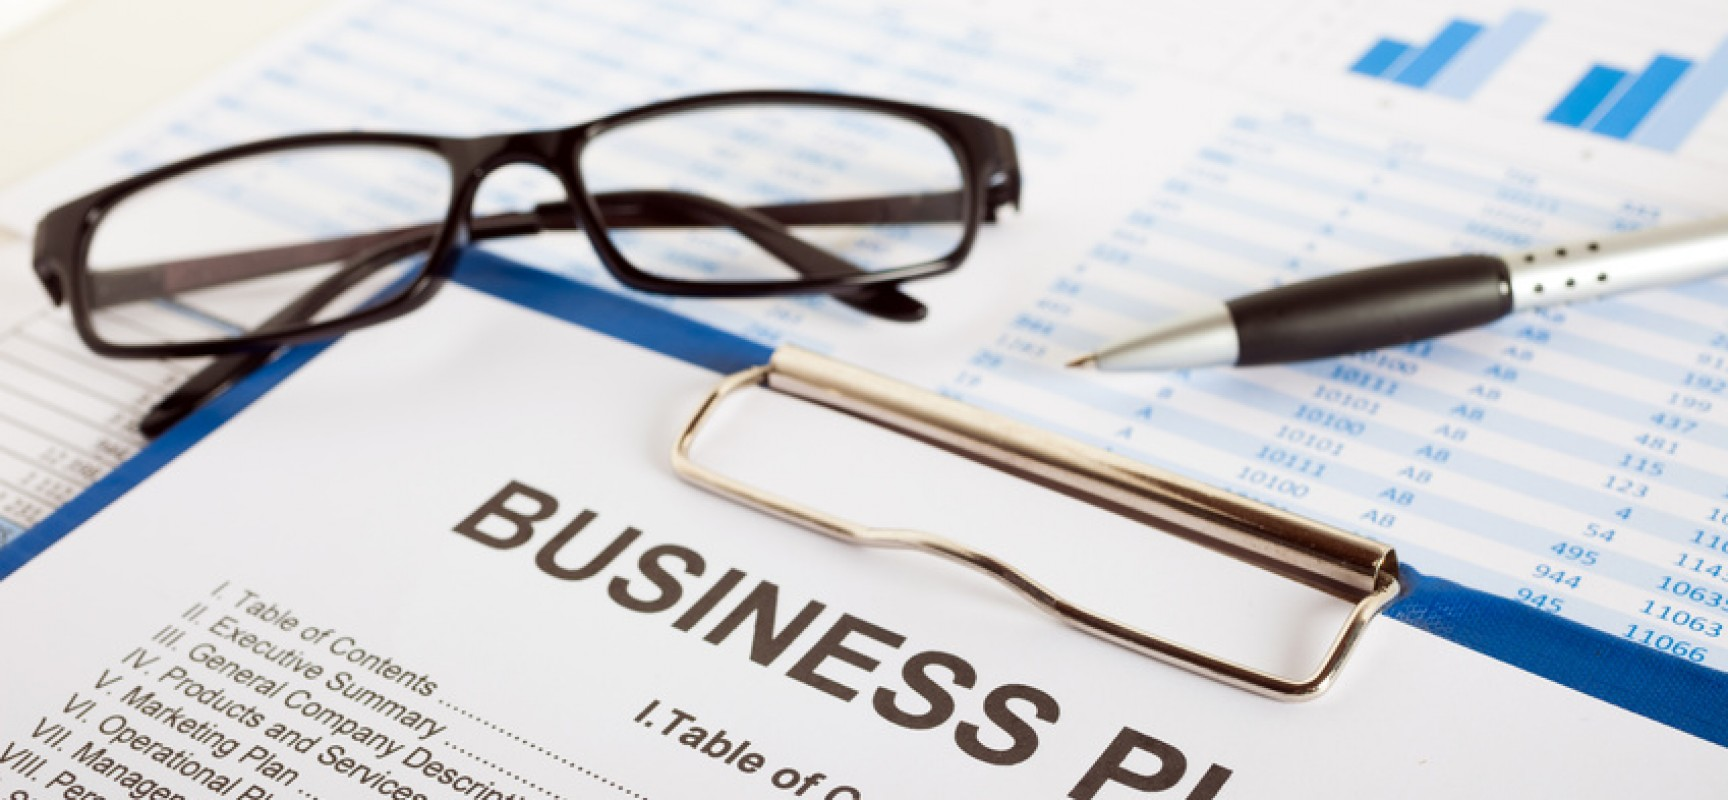 Three Important Considerations Before Starting an LLC